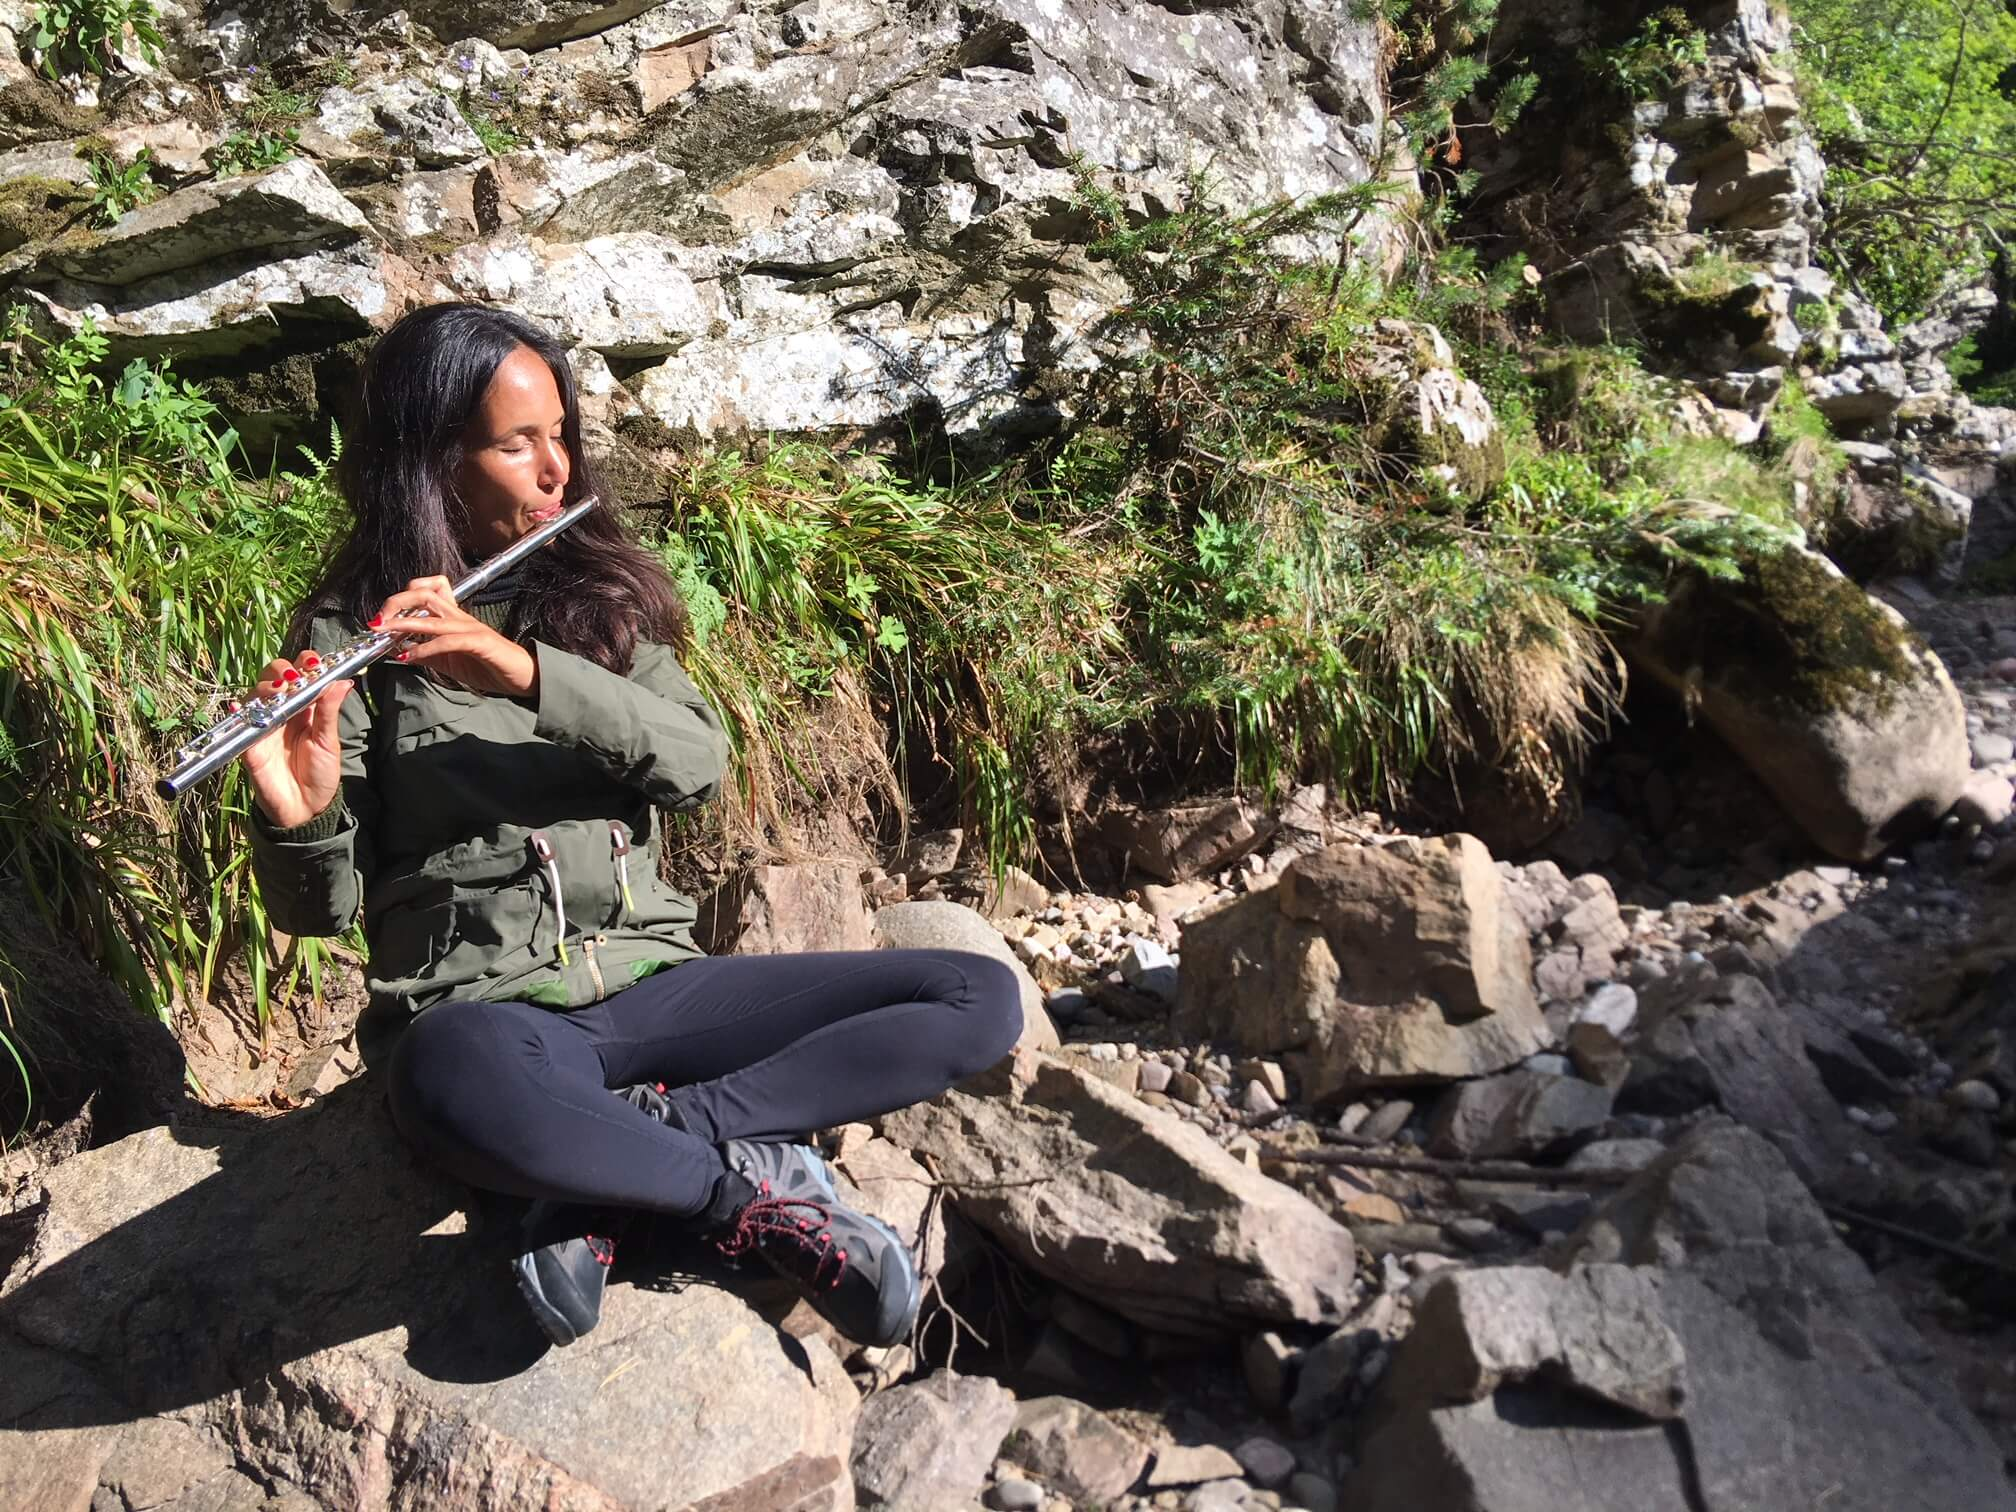 Playing the flute in nature after hiking